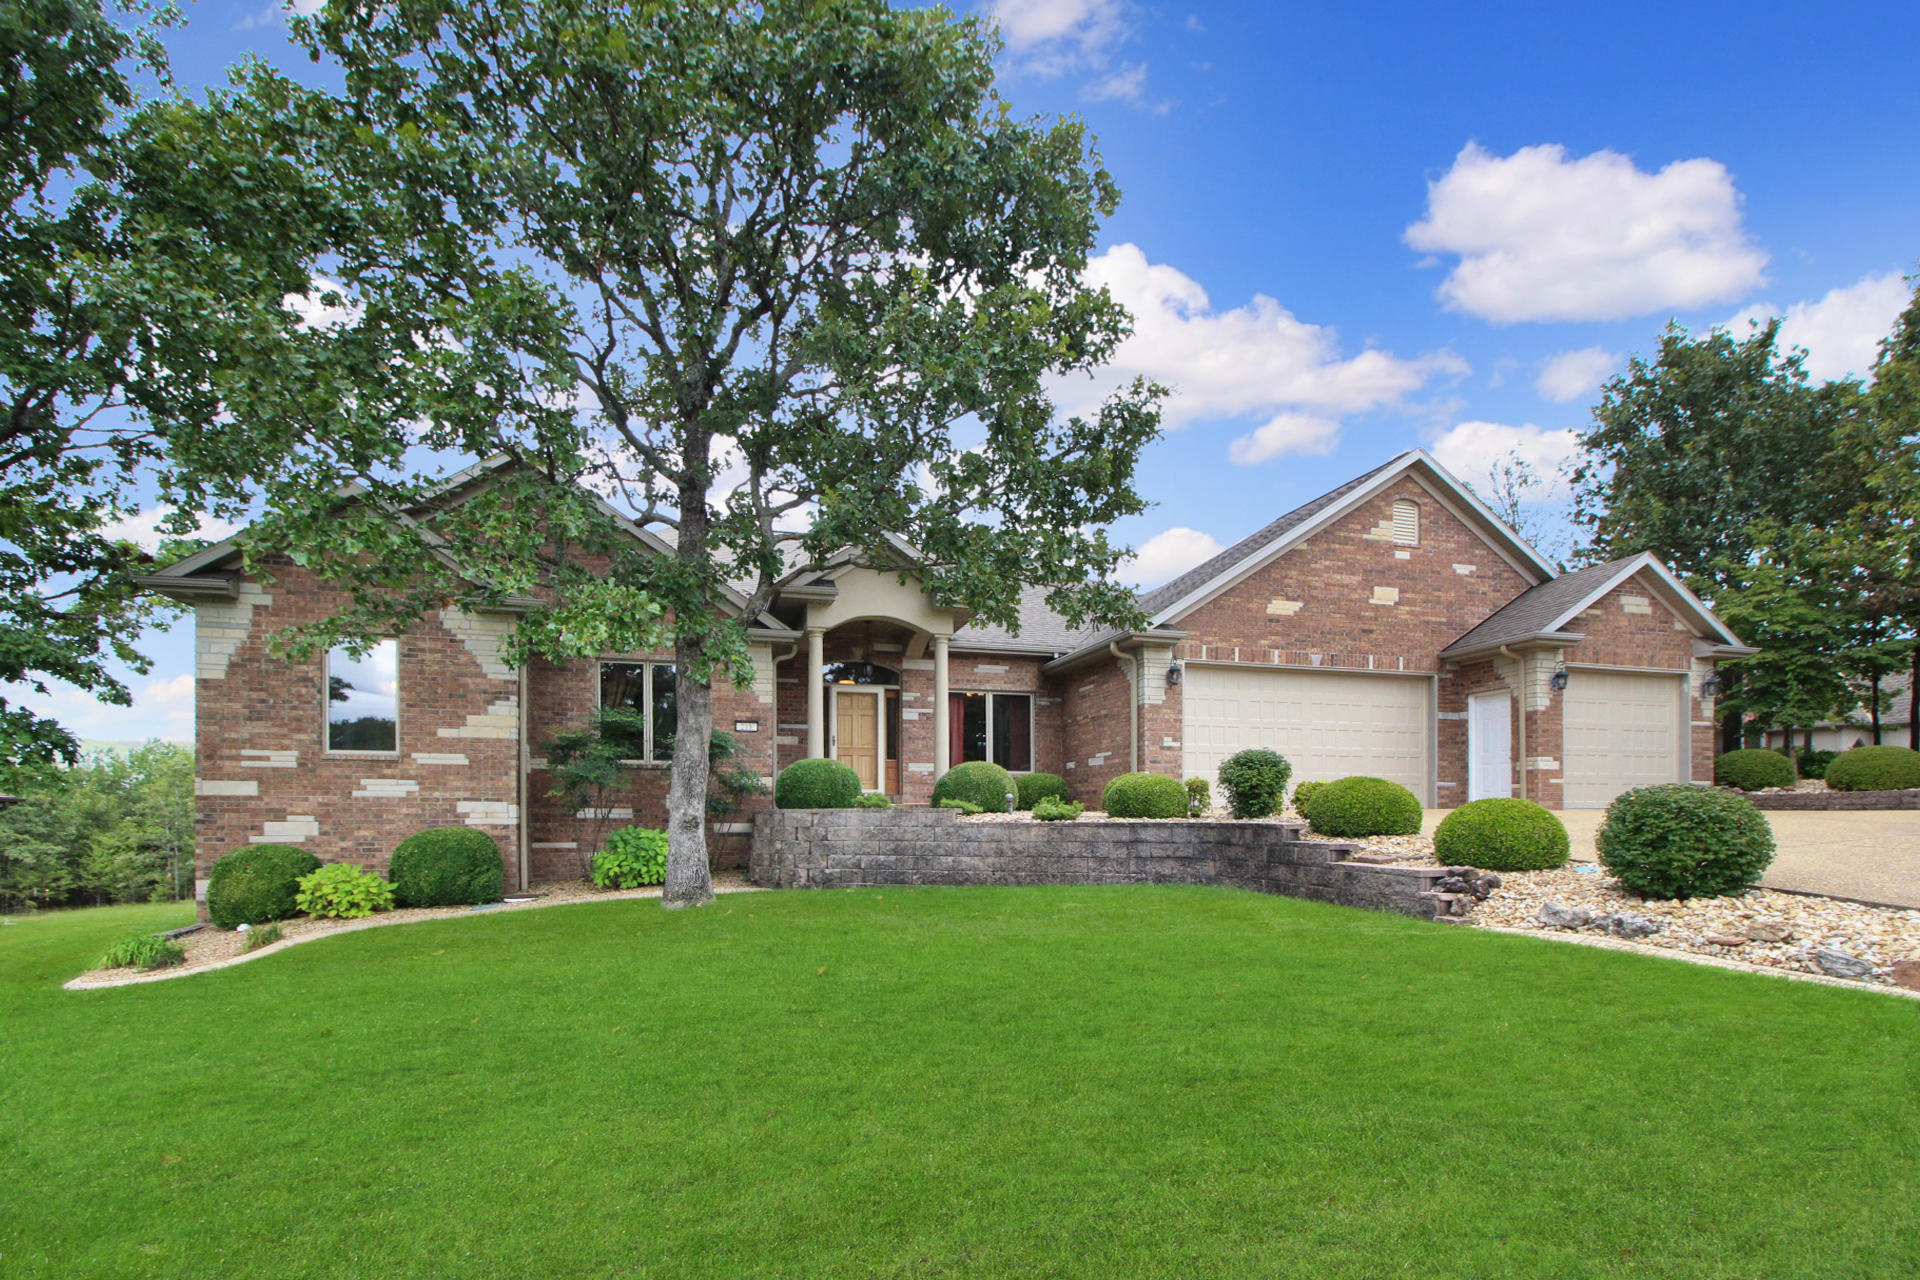 218 Forest Oak Drive Hollister, MO 65672